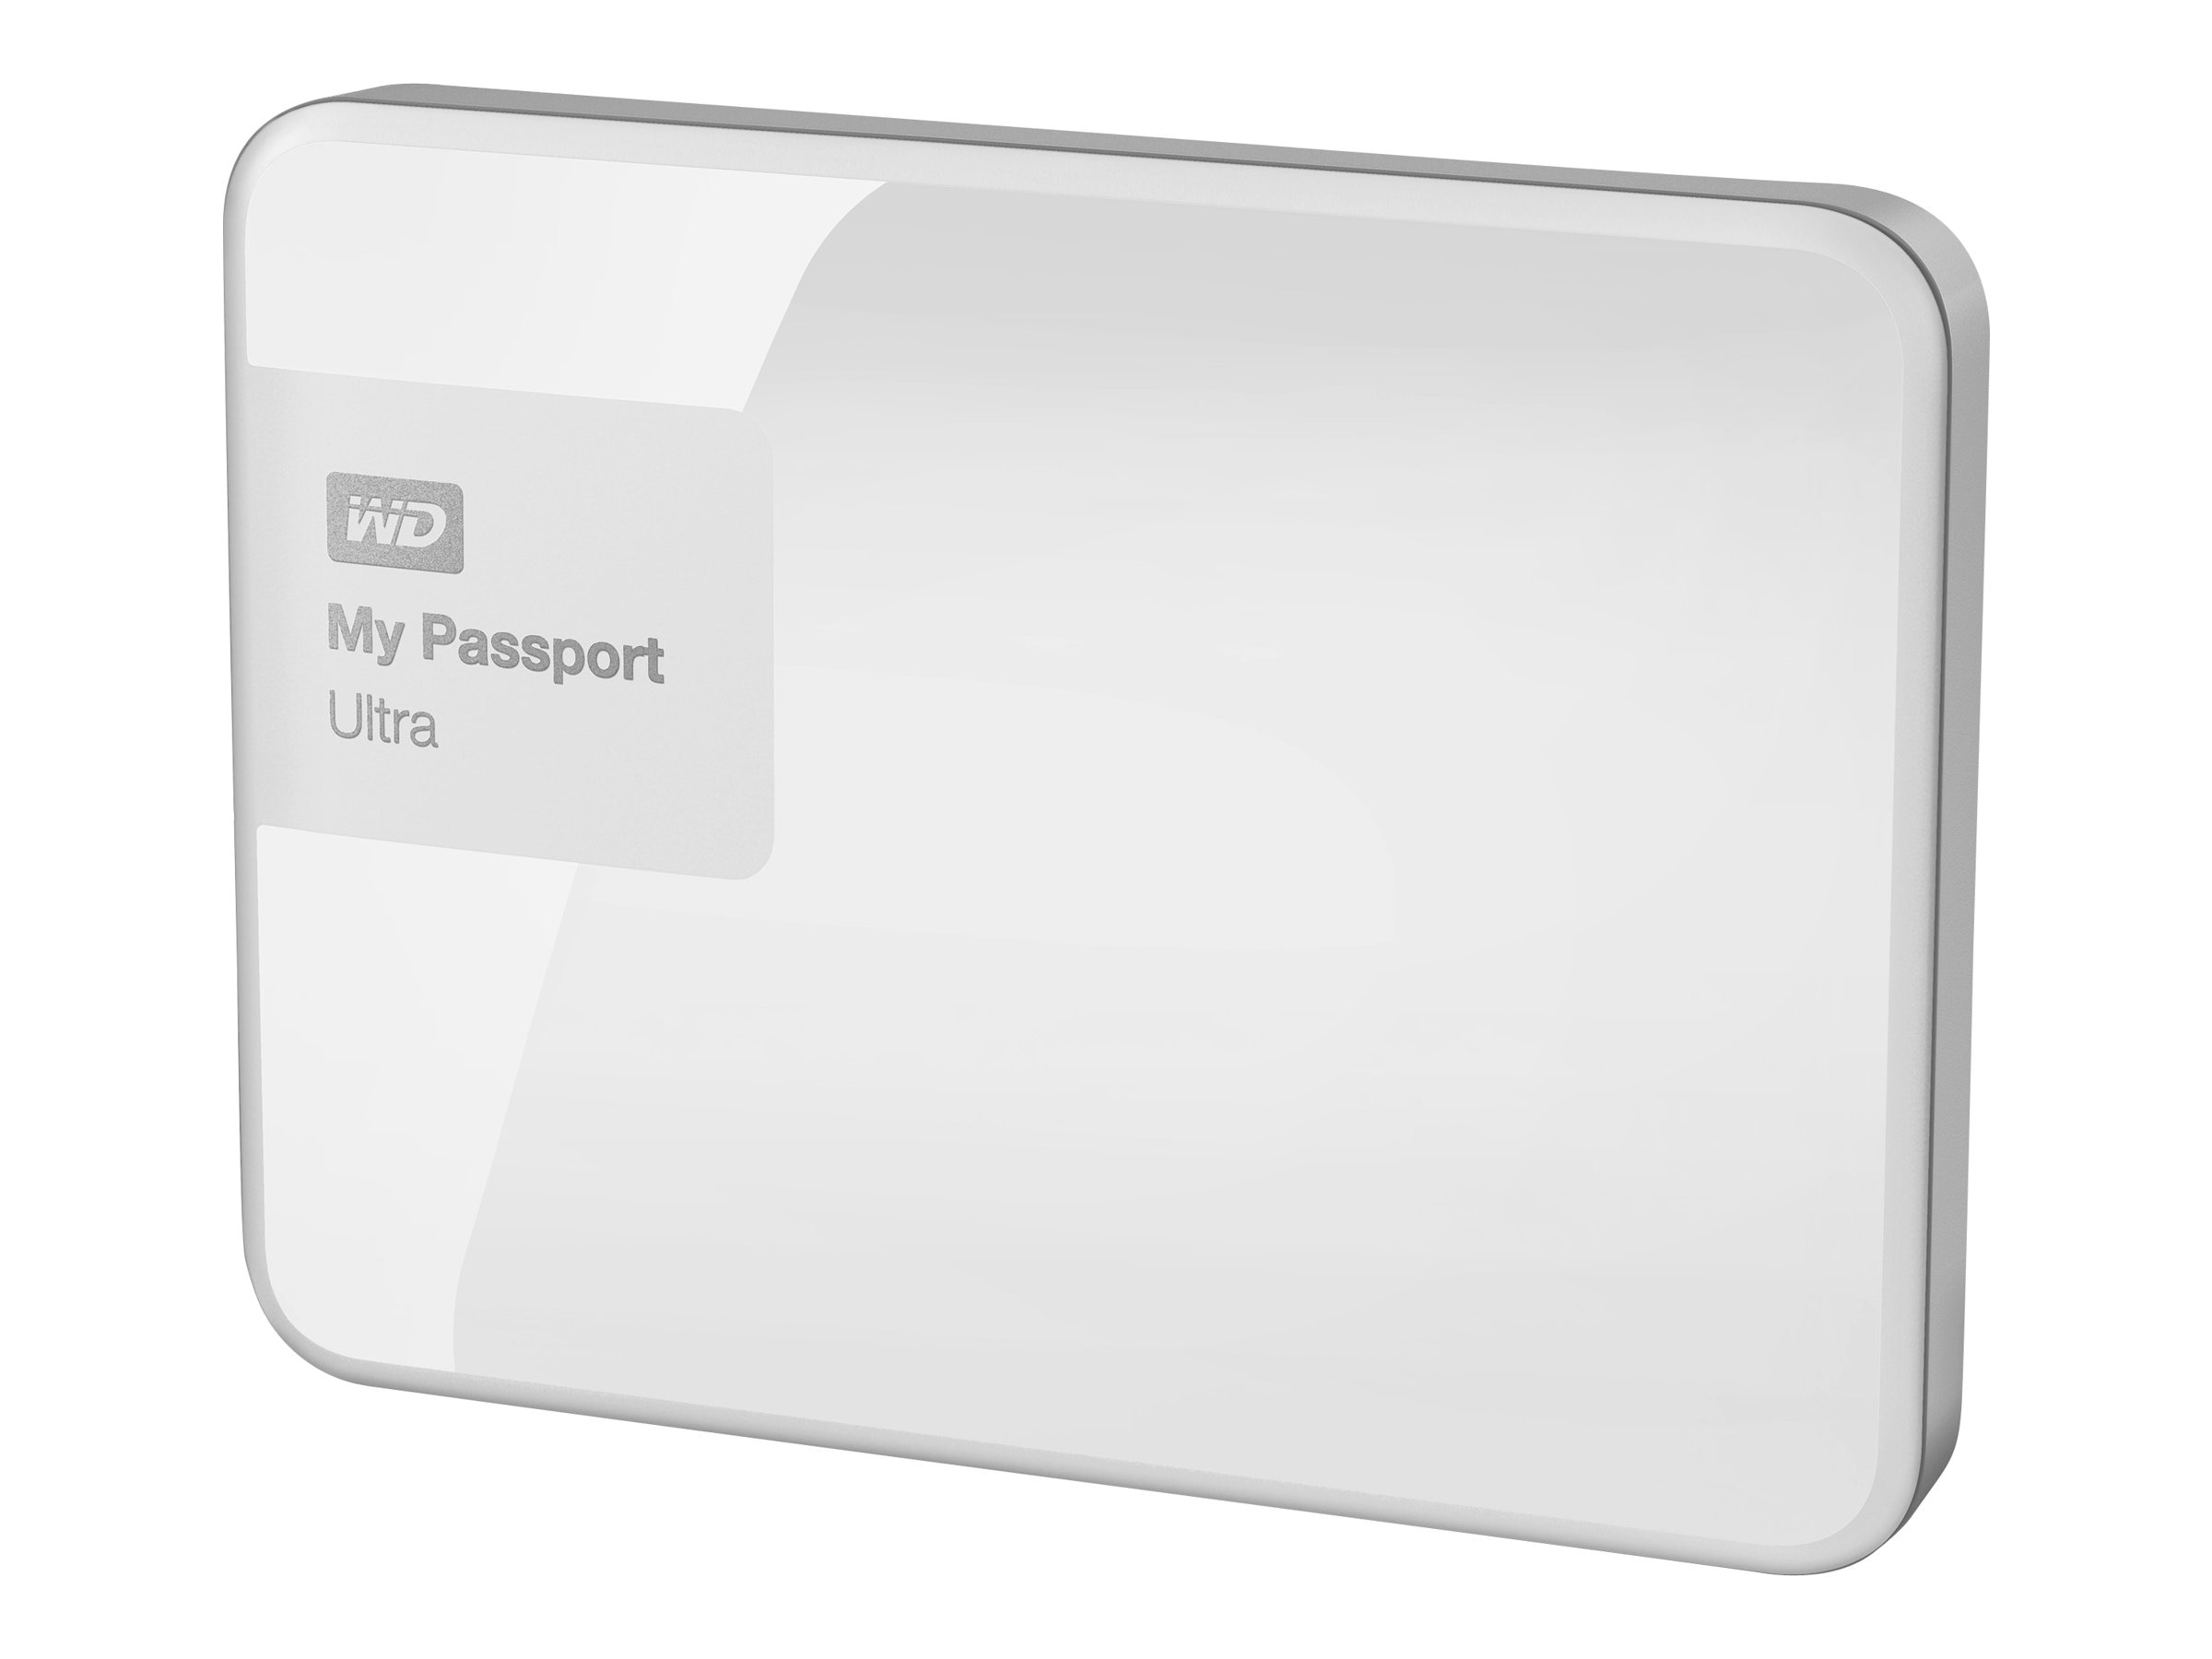 WD 2TB My Passport Ultra Portable Hard Drive - White, WDBBKD0020BWT-NESN, 21089112, Hard Drives - External